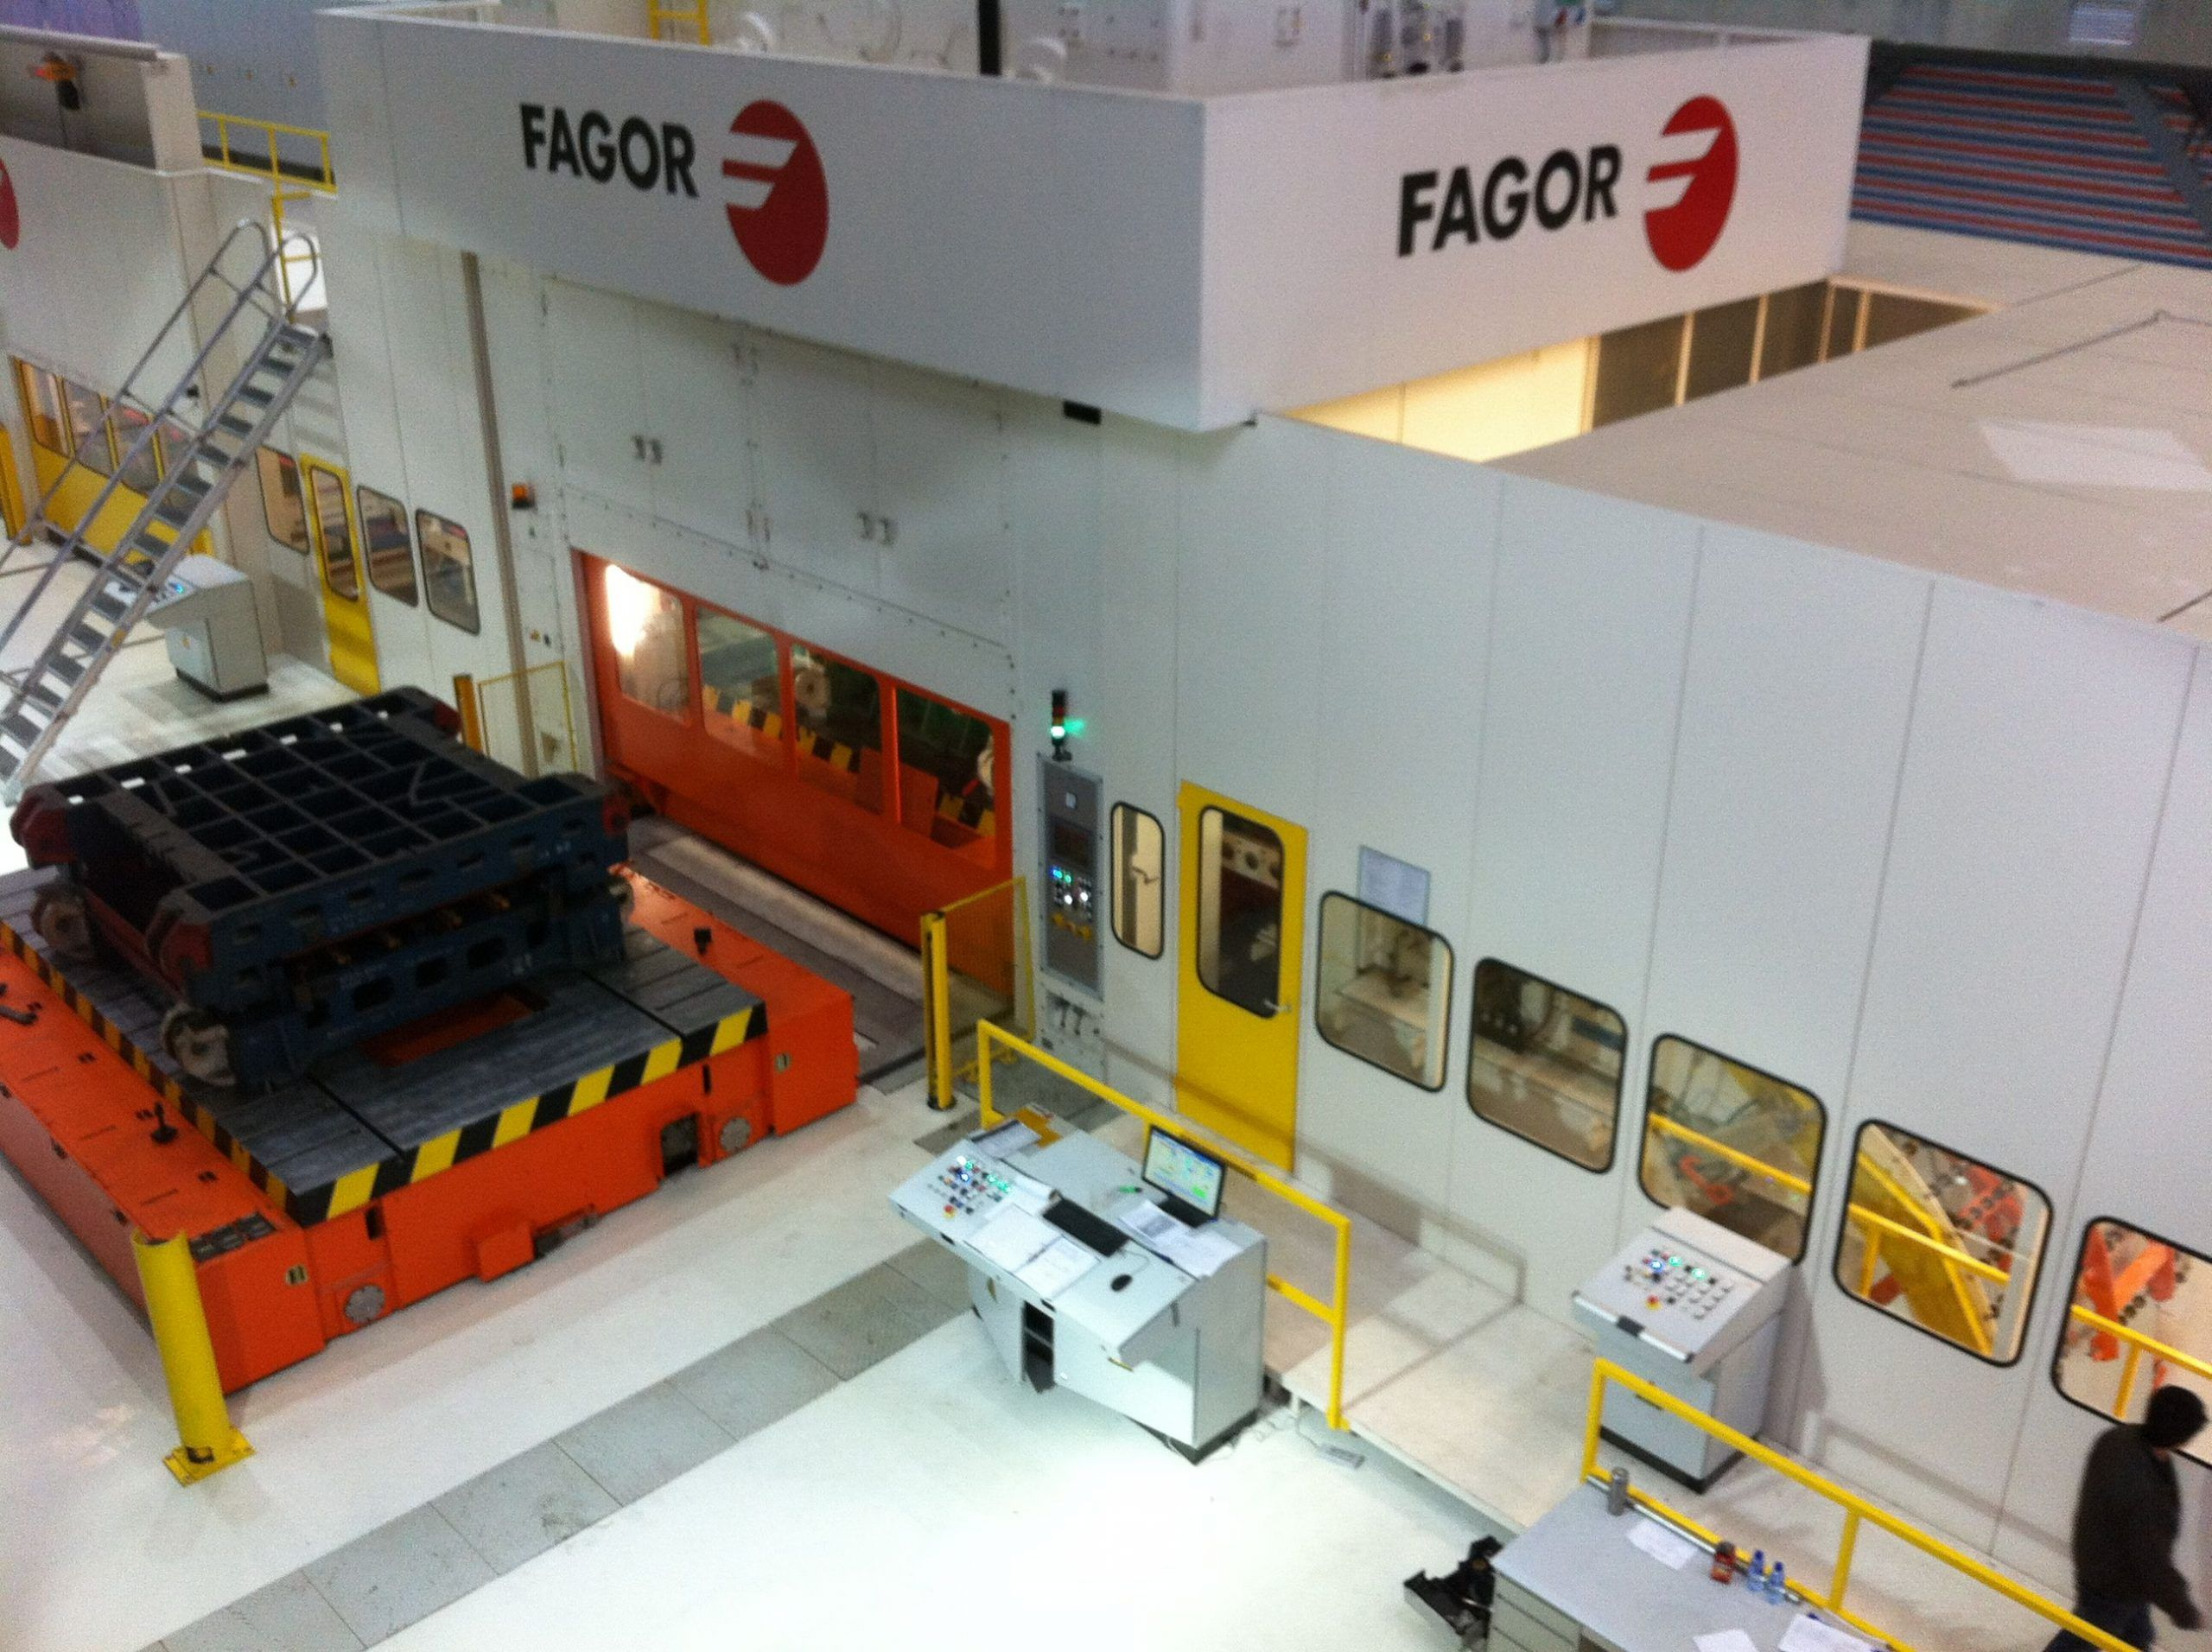 Fagor Arrasate event: WISCO AWARDS FAGOR ARRASATE WITH AN ORDER TO SUPPLY A NEW PRESS BLANKING LINE